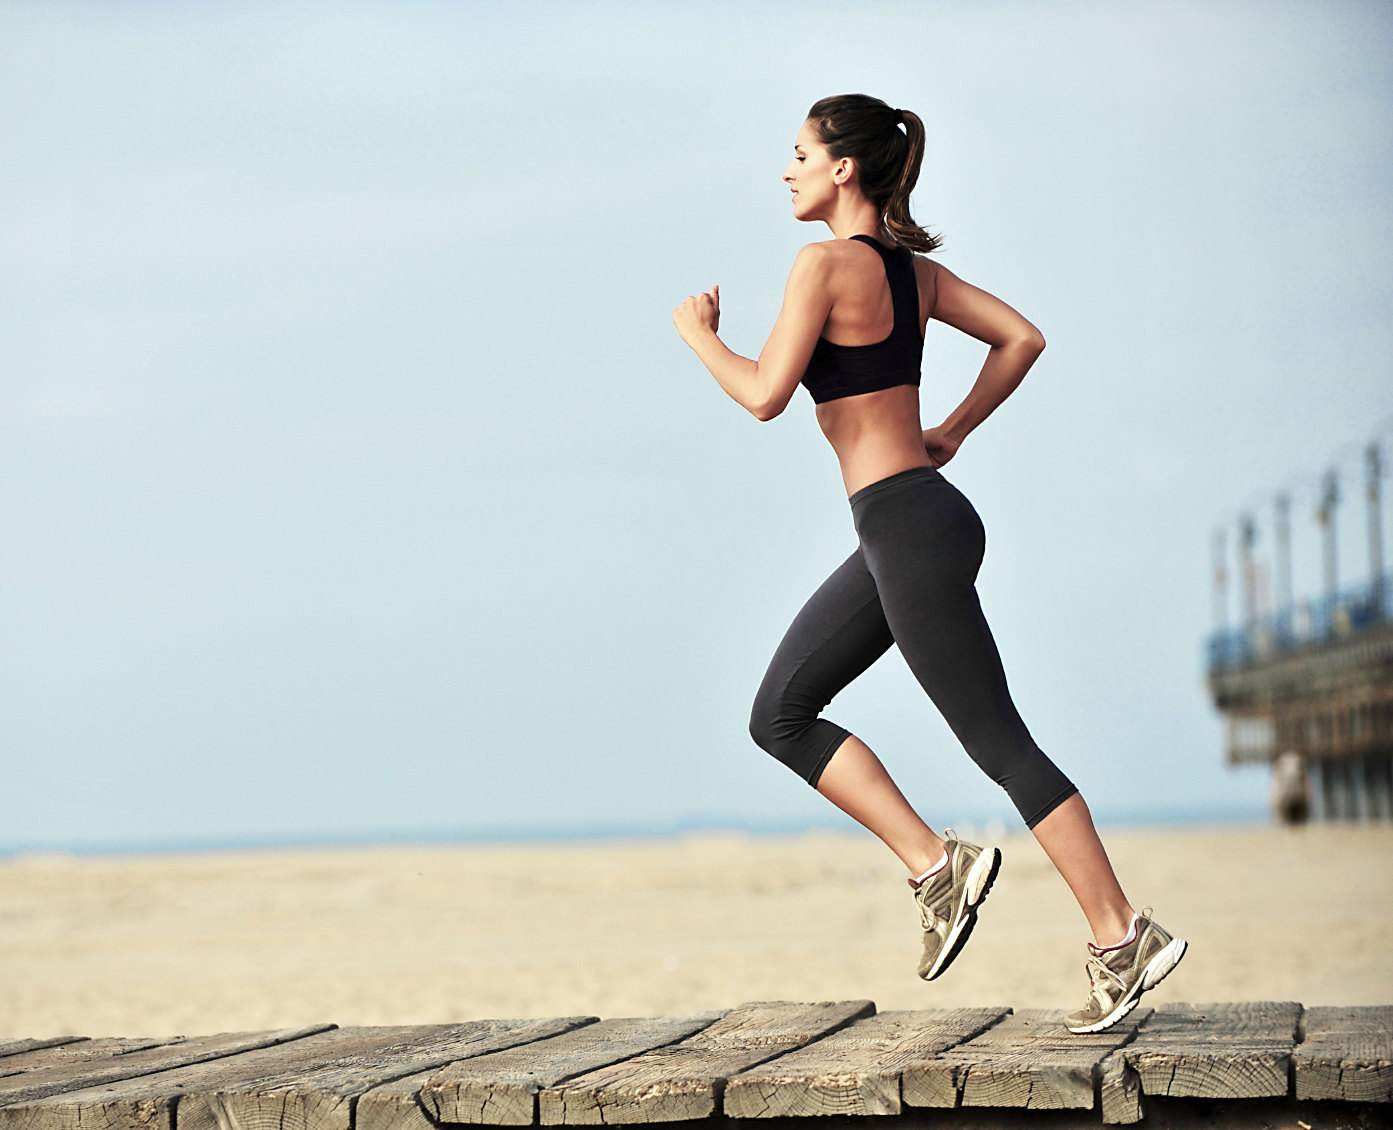 WORKOUT OF THE WEEK: OUTDOOR SPRINTS CIRCUIT - Parker Cote